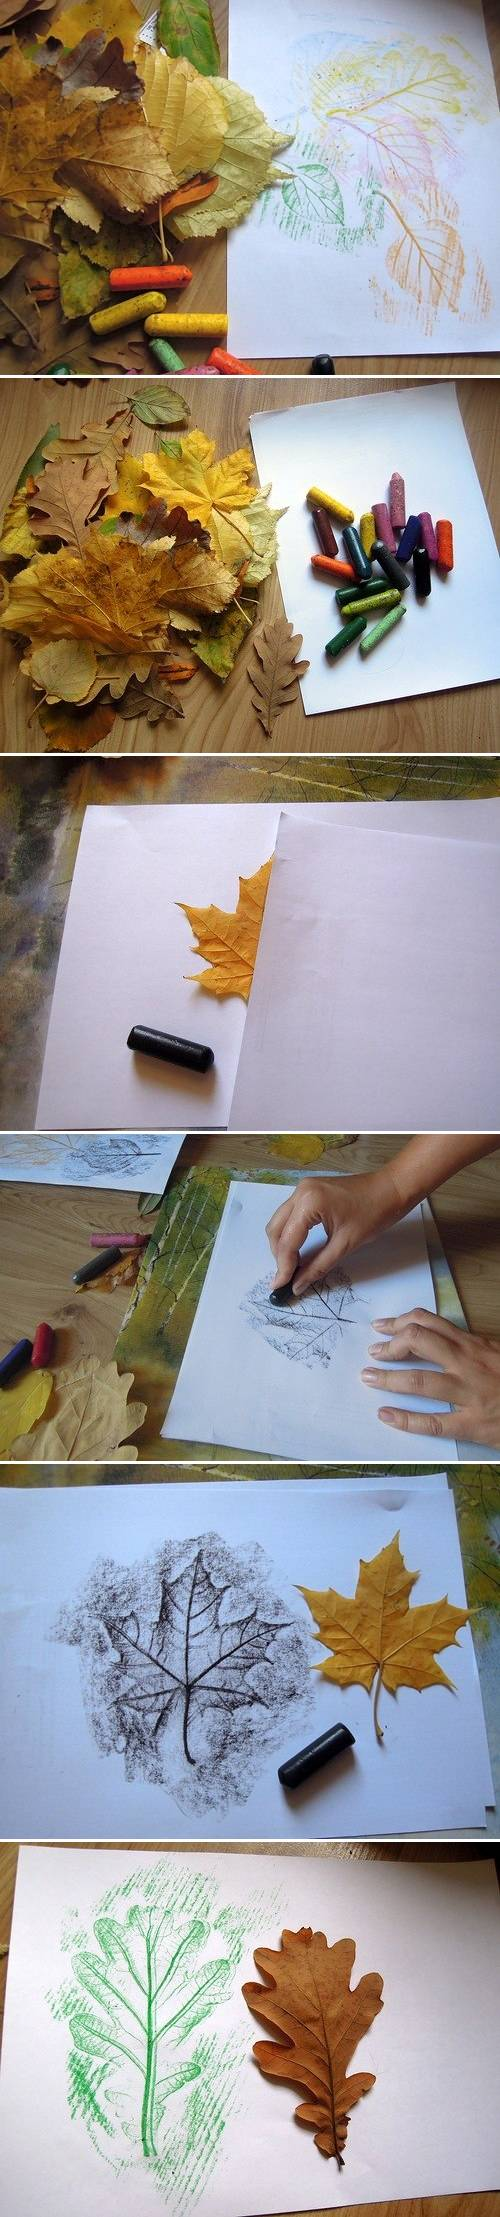 How to Draw Leaves step by step DIY tutorial instructions